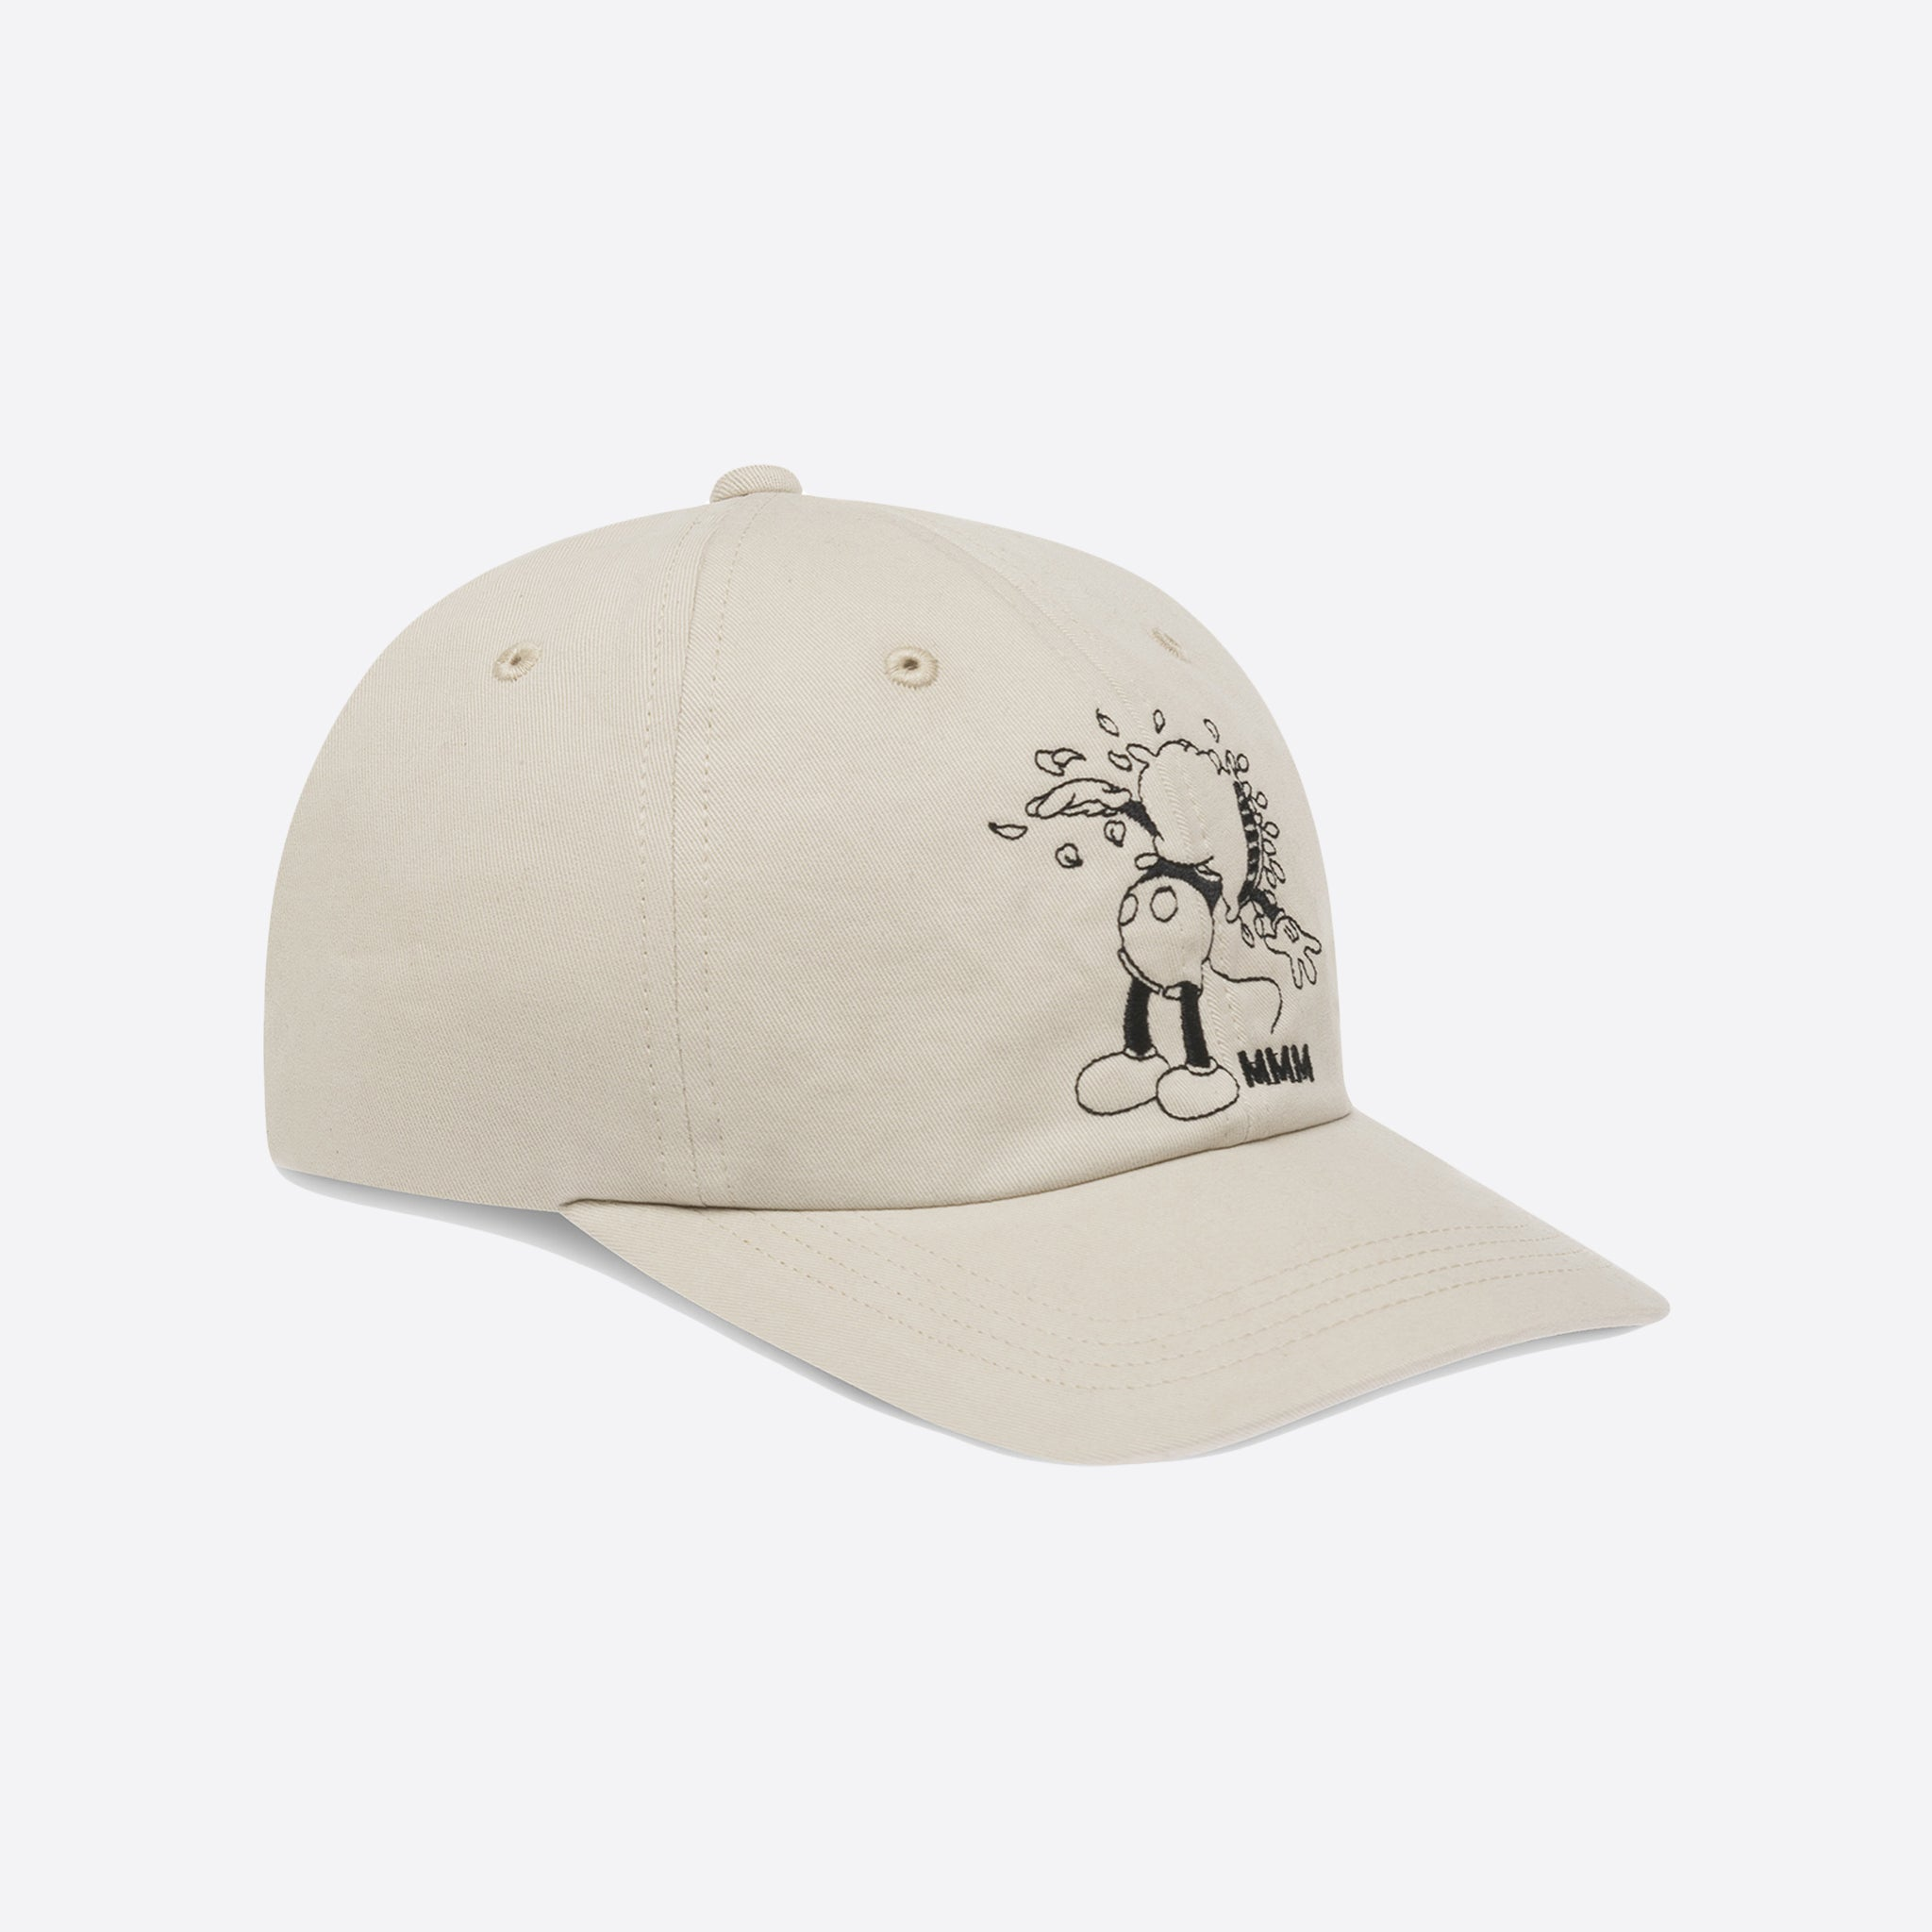 Wood Wood x Disney Low Profile Cap in Beige